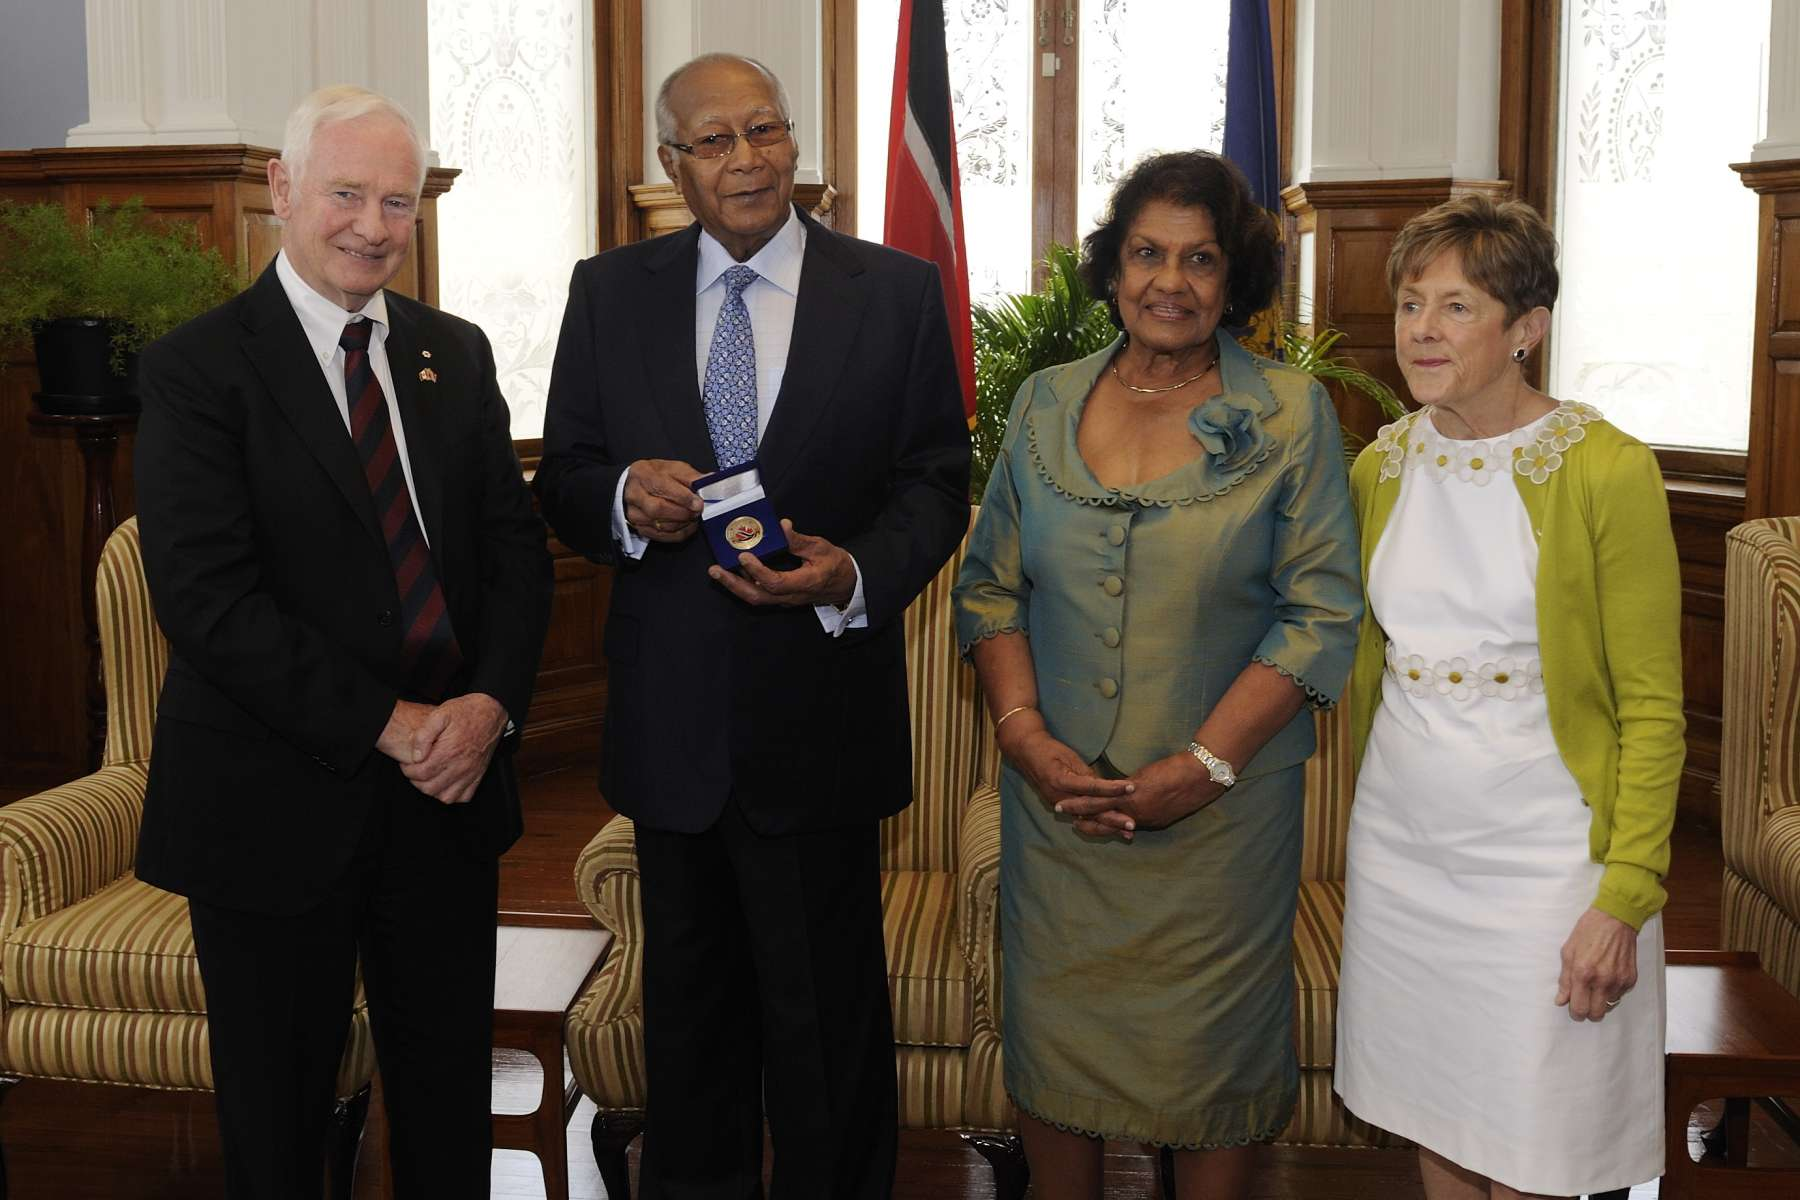 This year marks 50 years of bilateral relations between the two countries, as well as 50 years of independence for Trinidad and Tobago. The Governor General presented a 50th anniversary commemorative coin to the President of the Republic of Trinidad and Tobago.